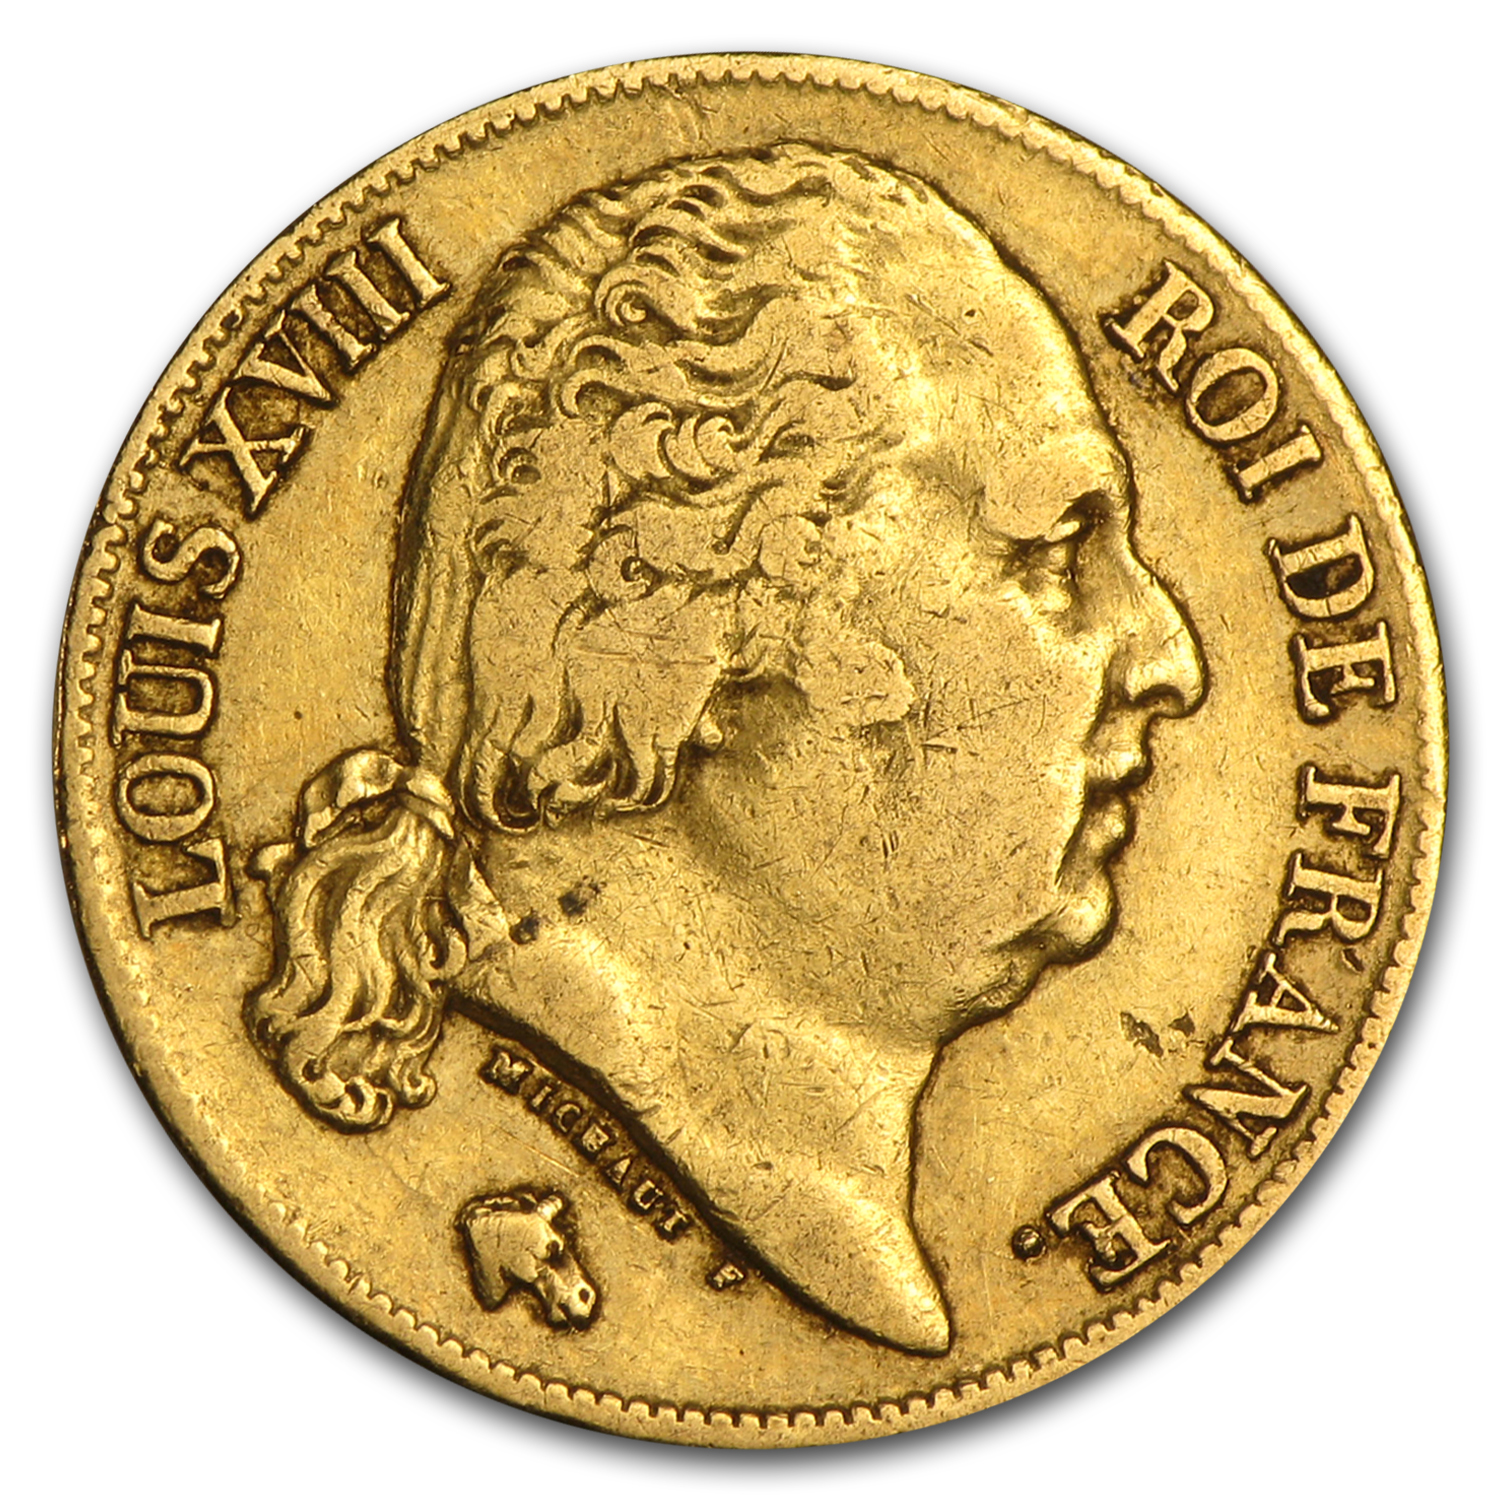 1816-1824 France Gold 20 Francs Louis XVIII Avg Circ